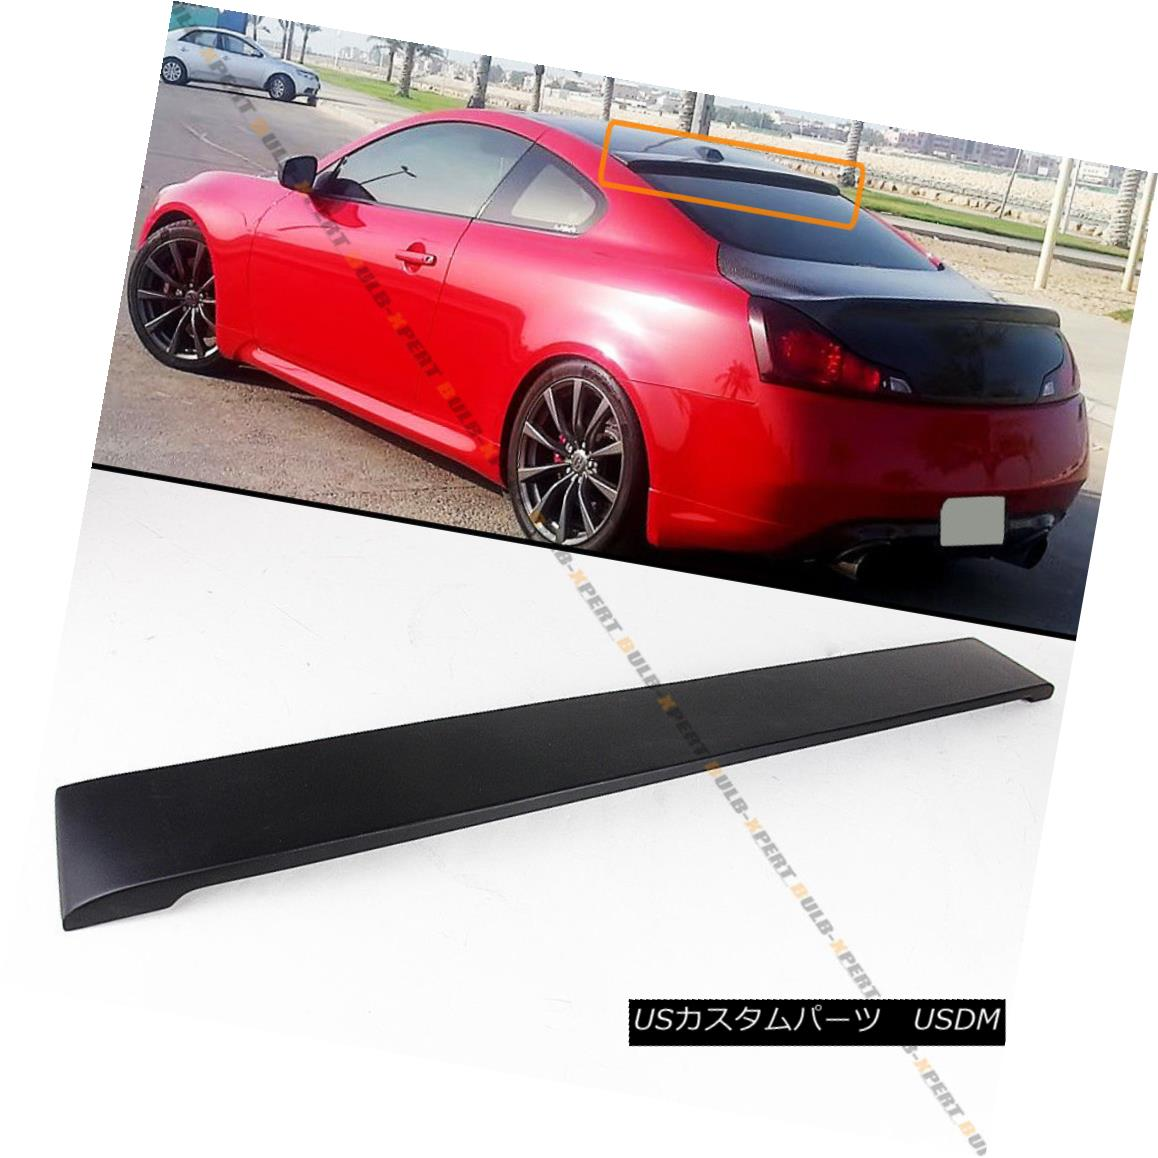 For Infiniti 08 2016 G37 Q60 2dr Coupe Blk Primer Rear Window Roof Spoiler Wing Ushirika Coop